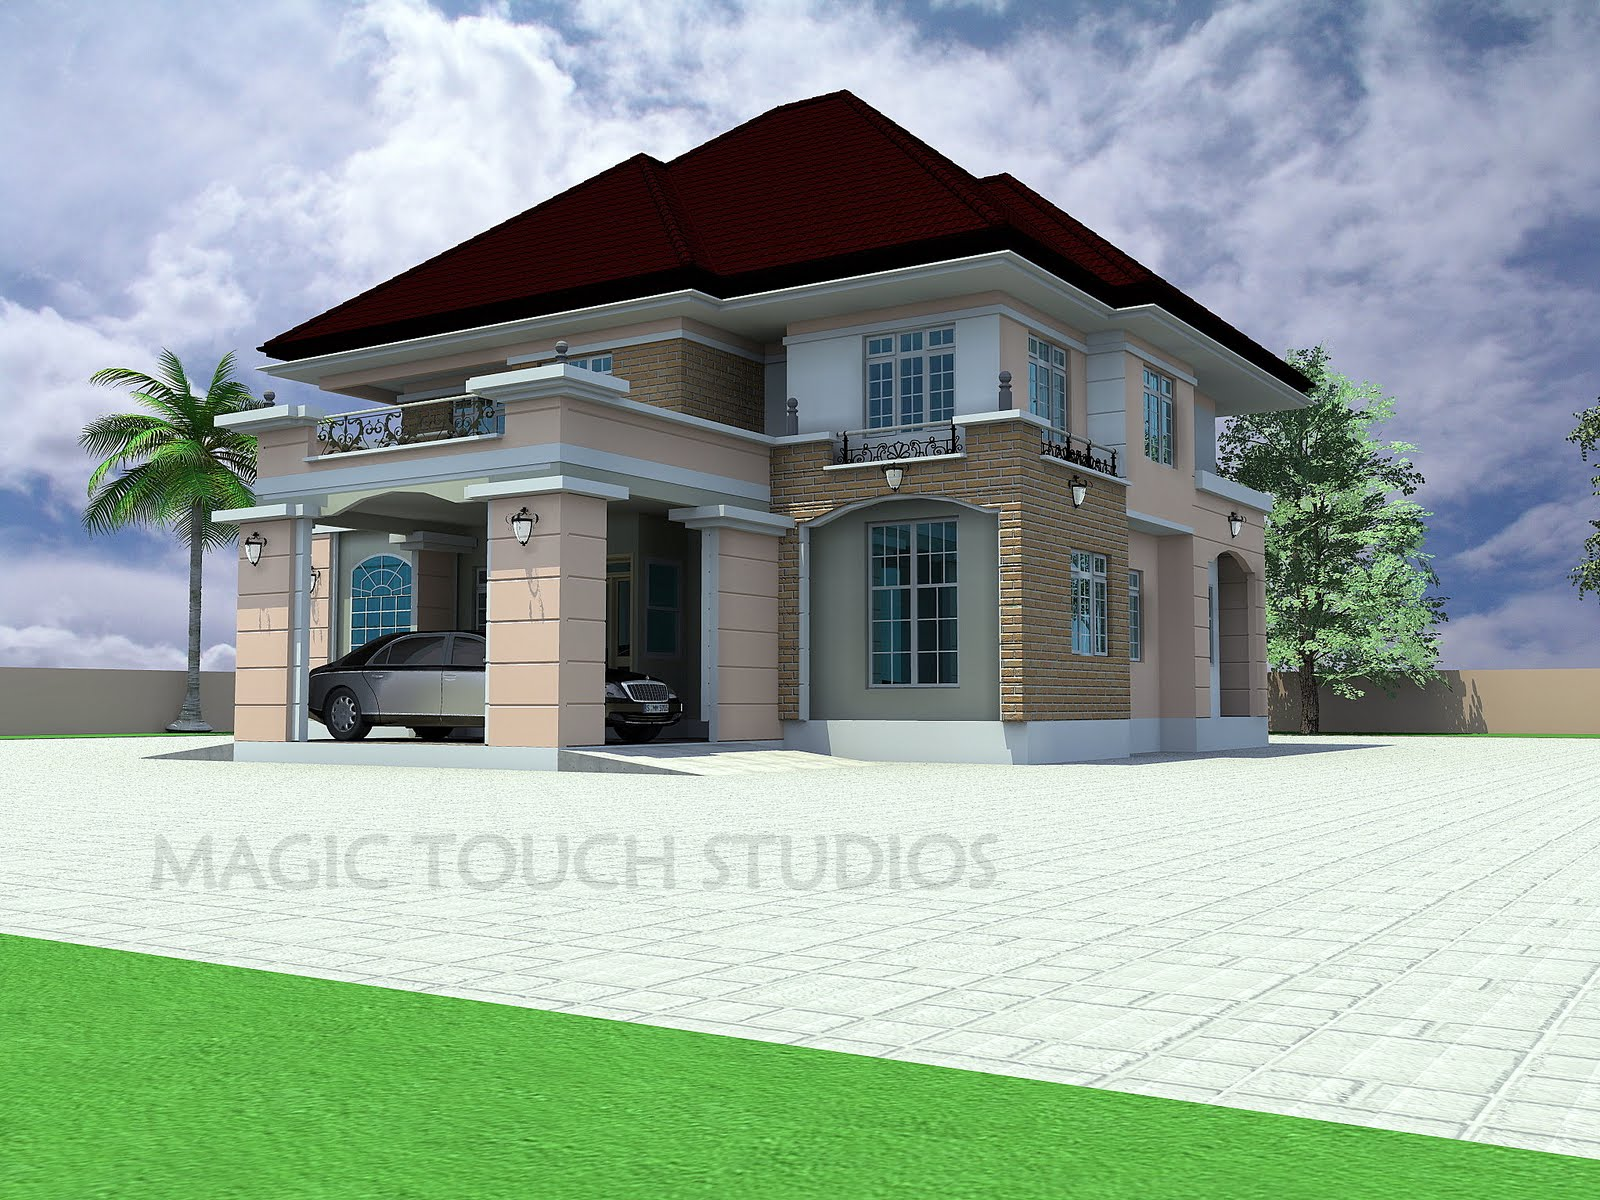 Duplex nigeria joy studio design gallery best design for Residential home design